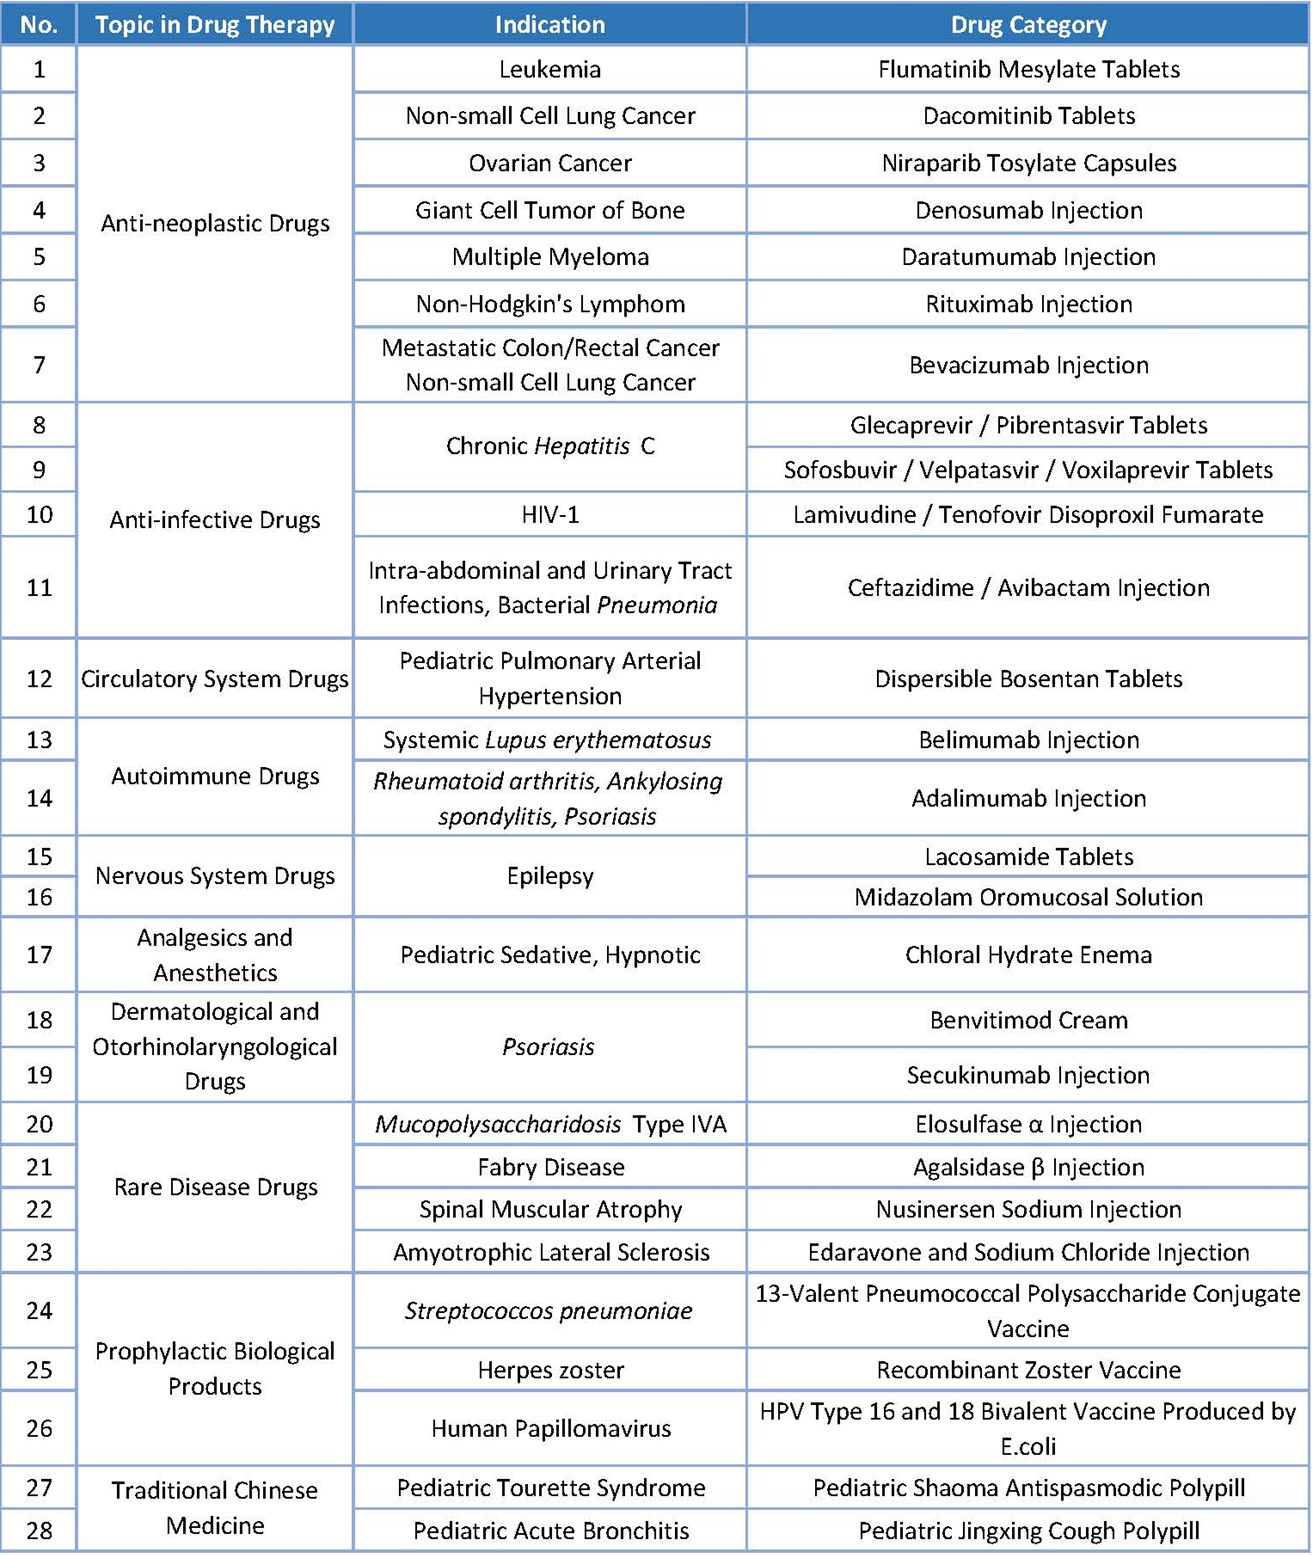 Table 1. Overview of 2019 New Drug Approvals for Hot Topics in Drug Therapy